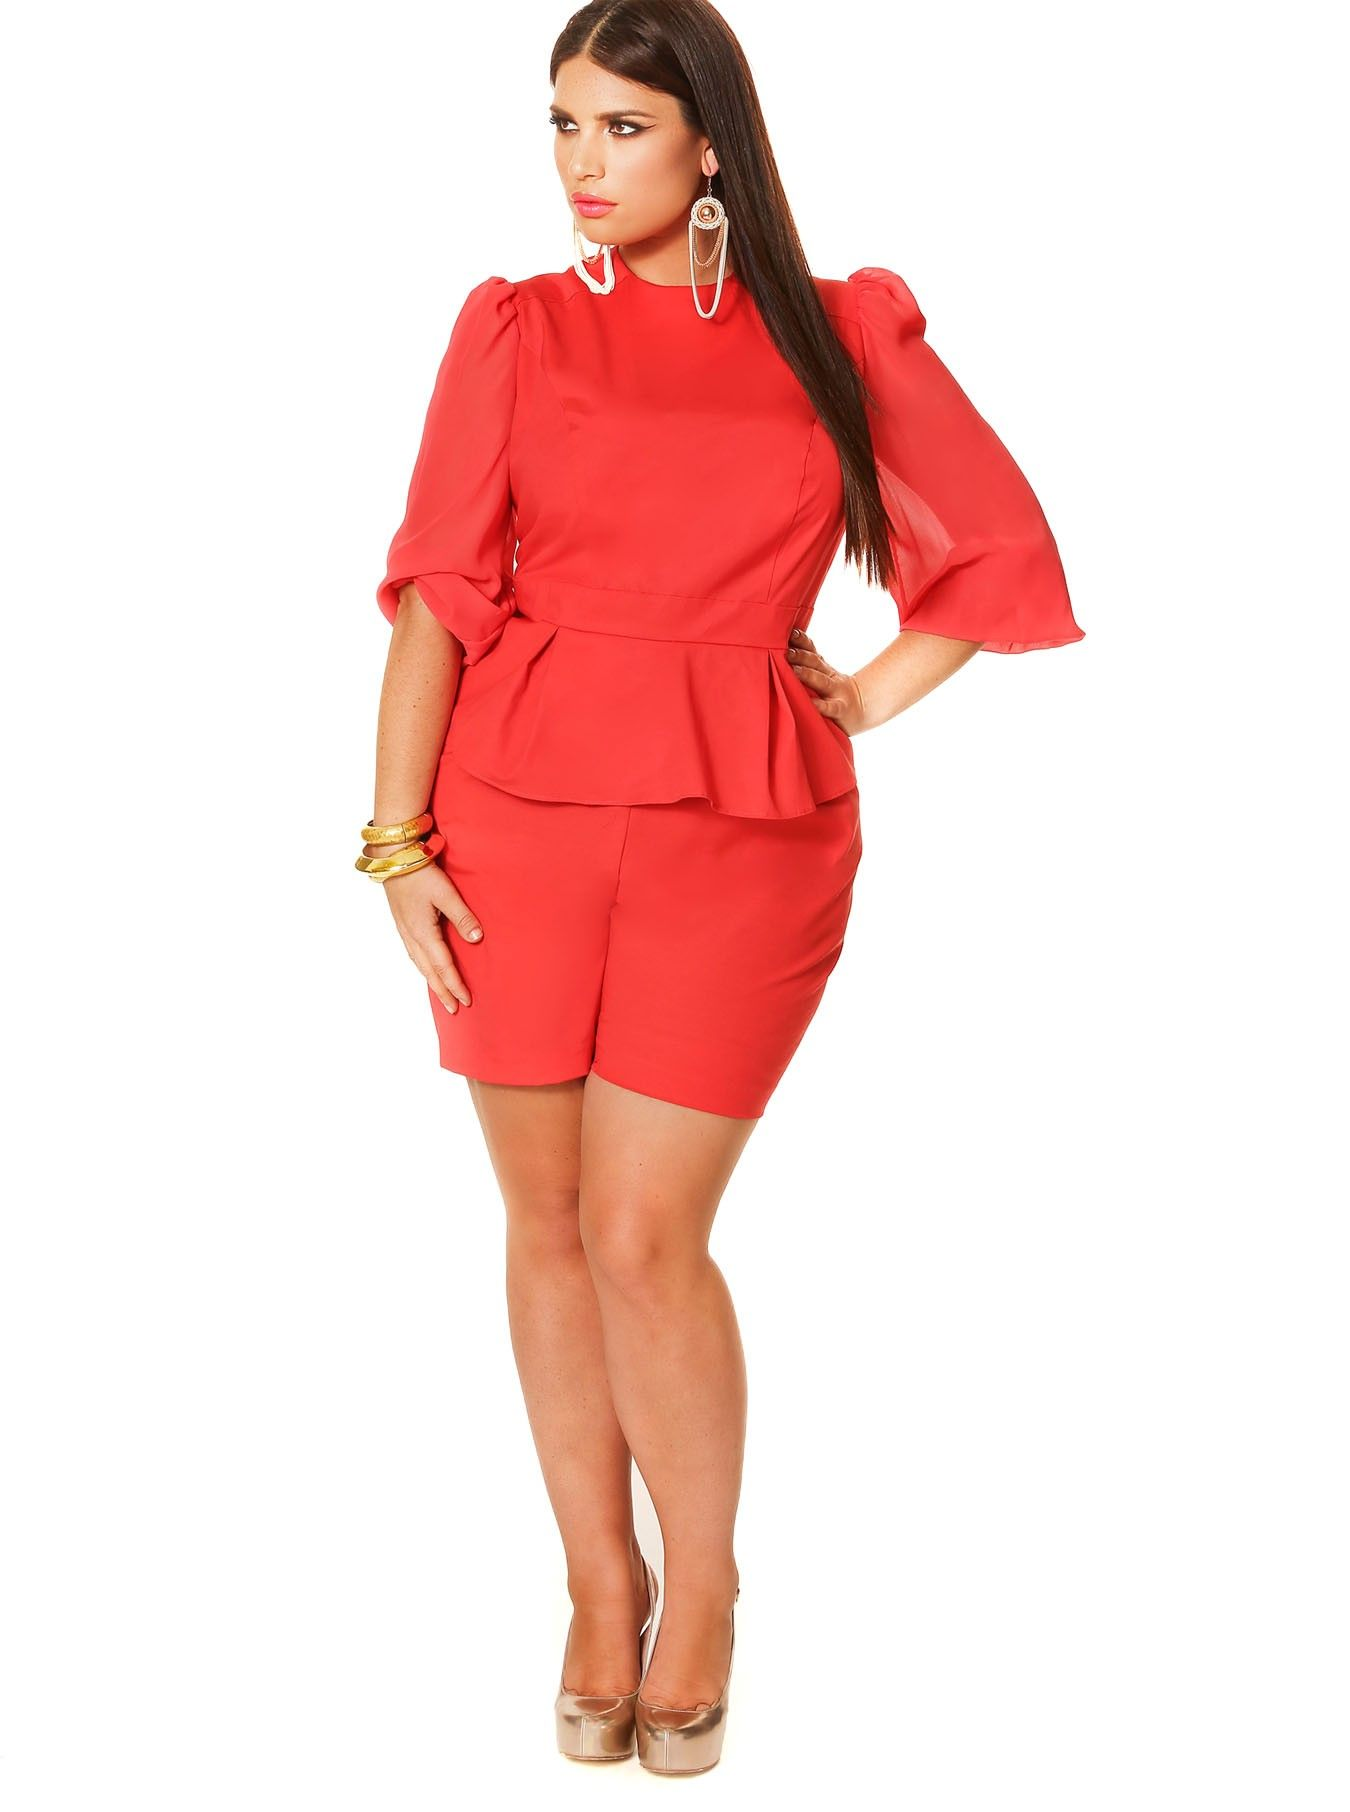 Ium excited about the romper look the cute long ruffles at the